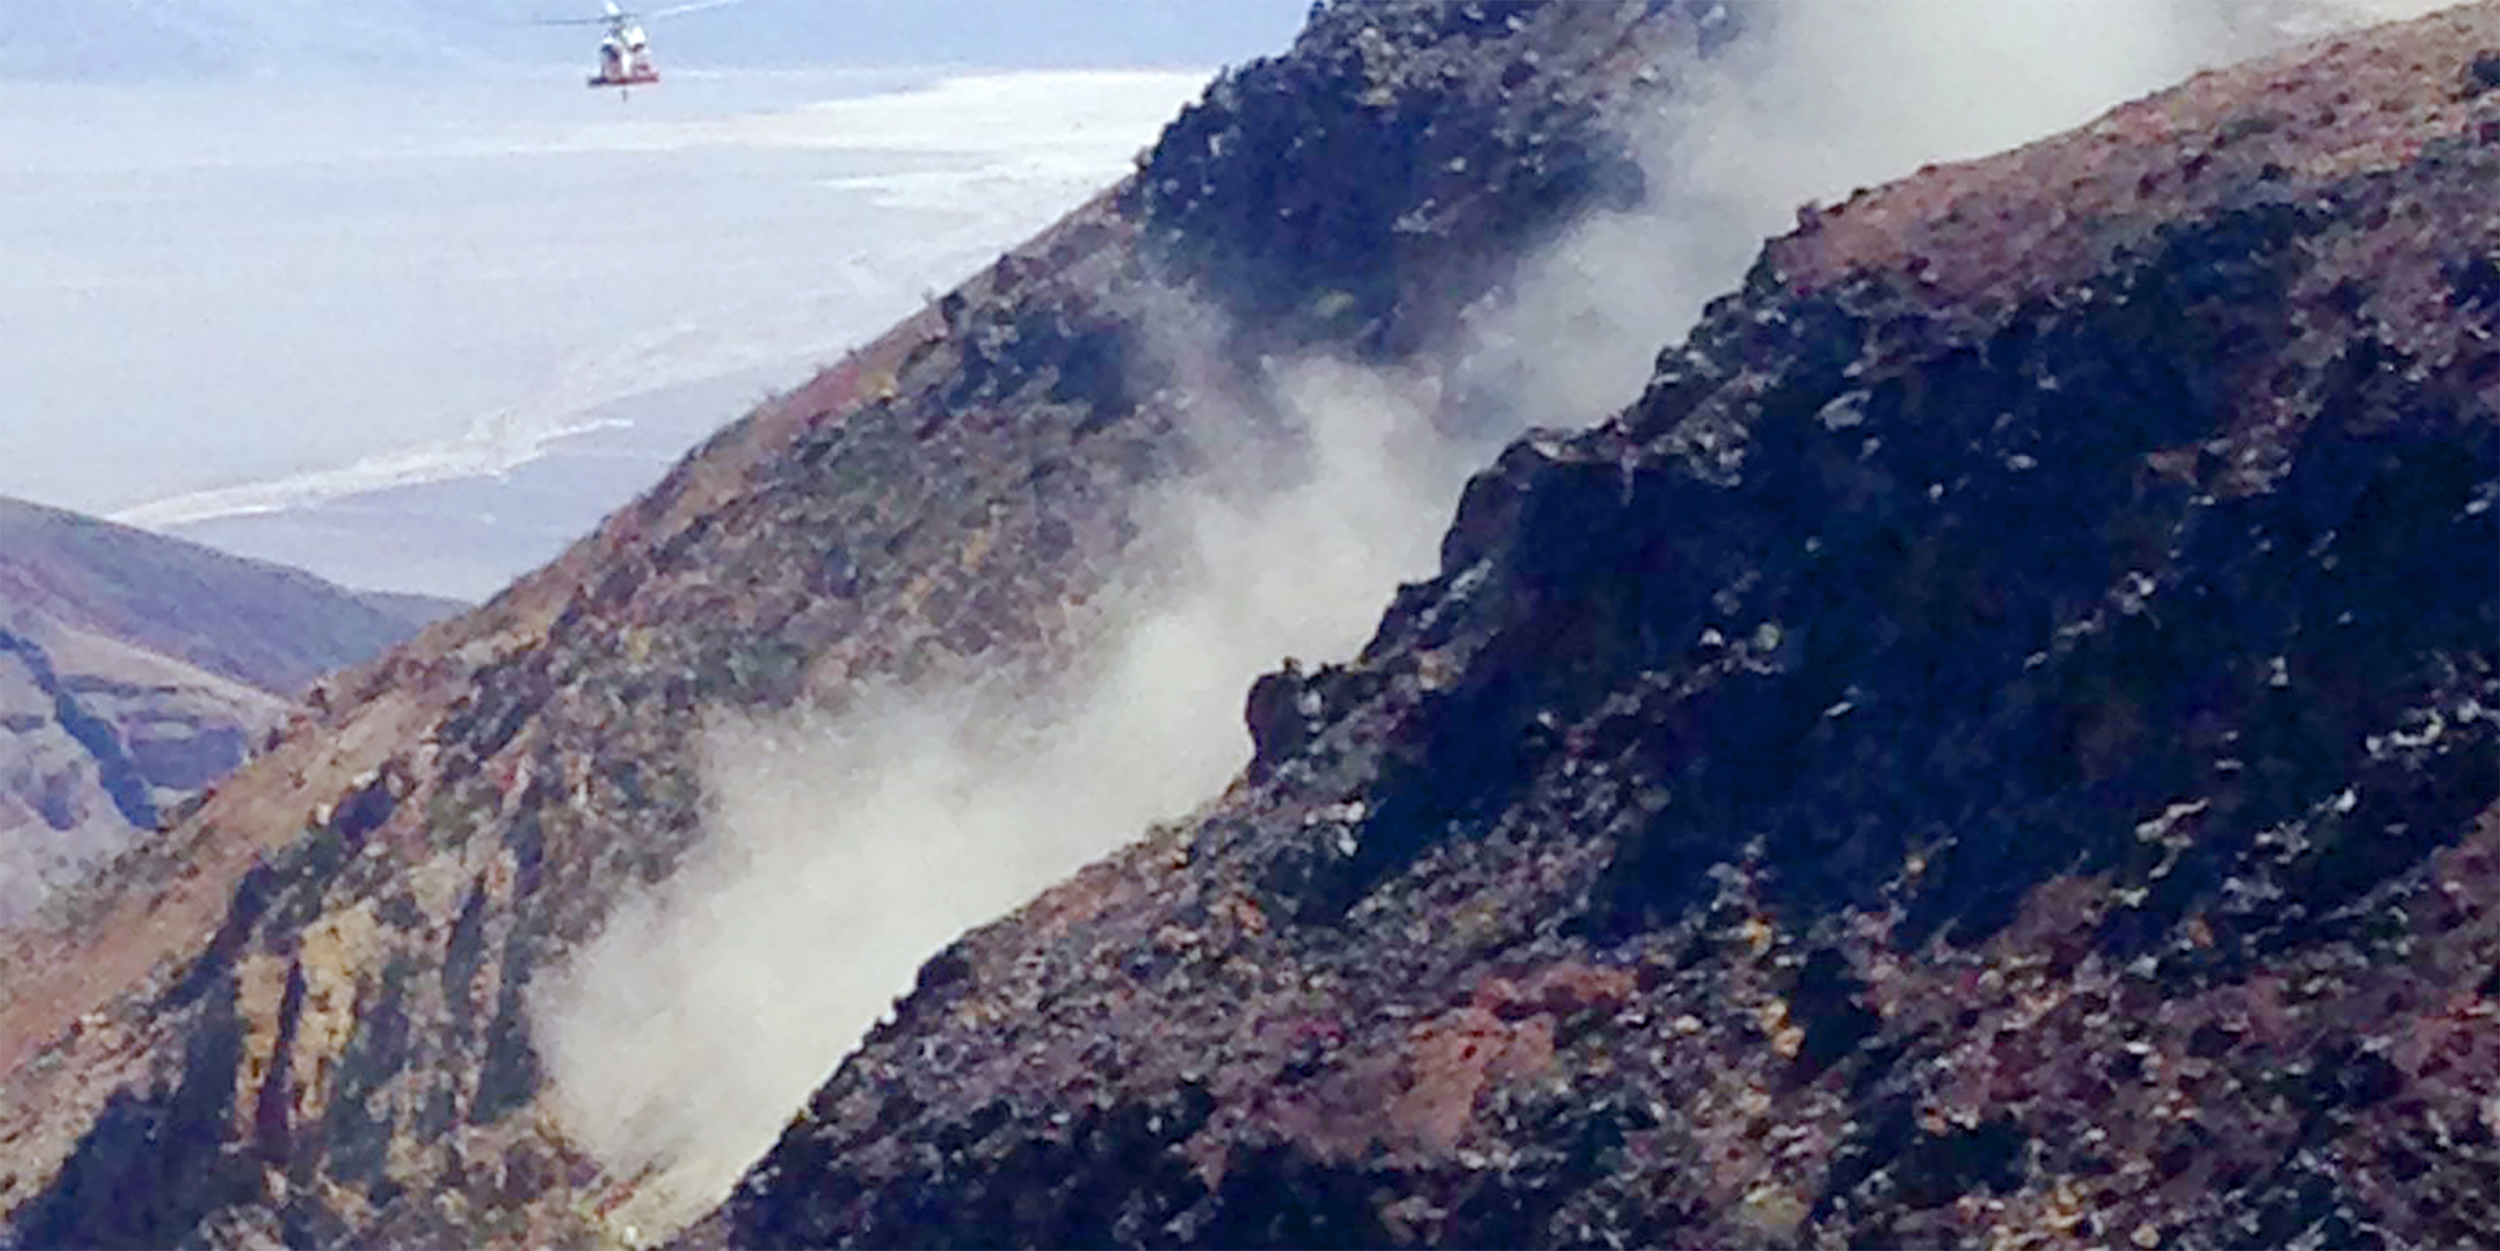 Navy pilot killed in Death Valley canyon crash identified